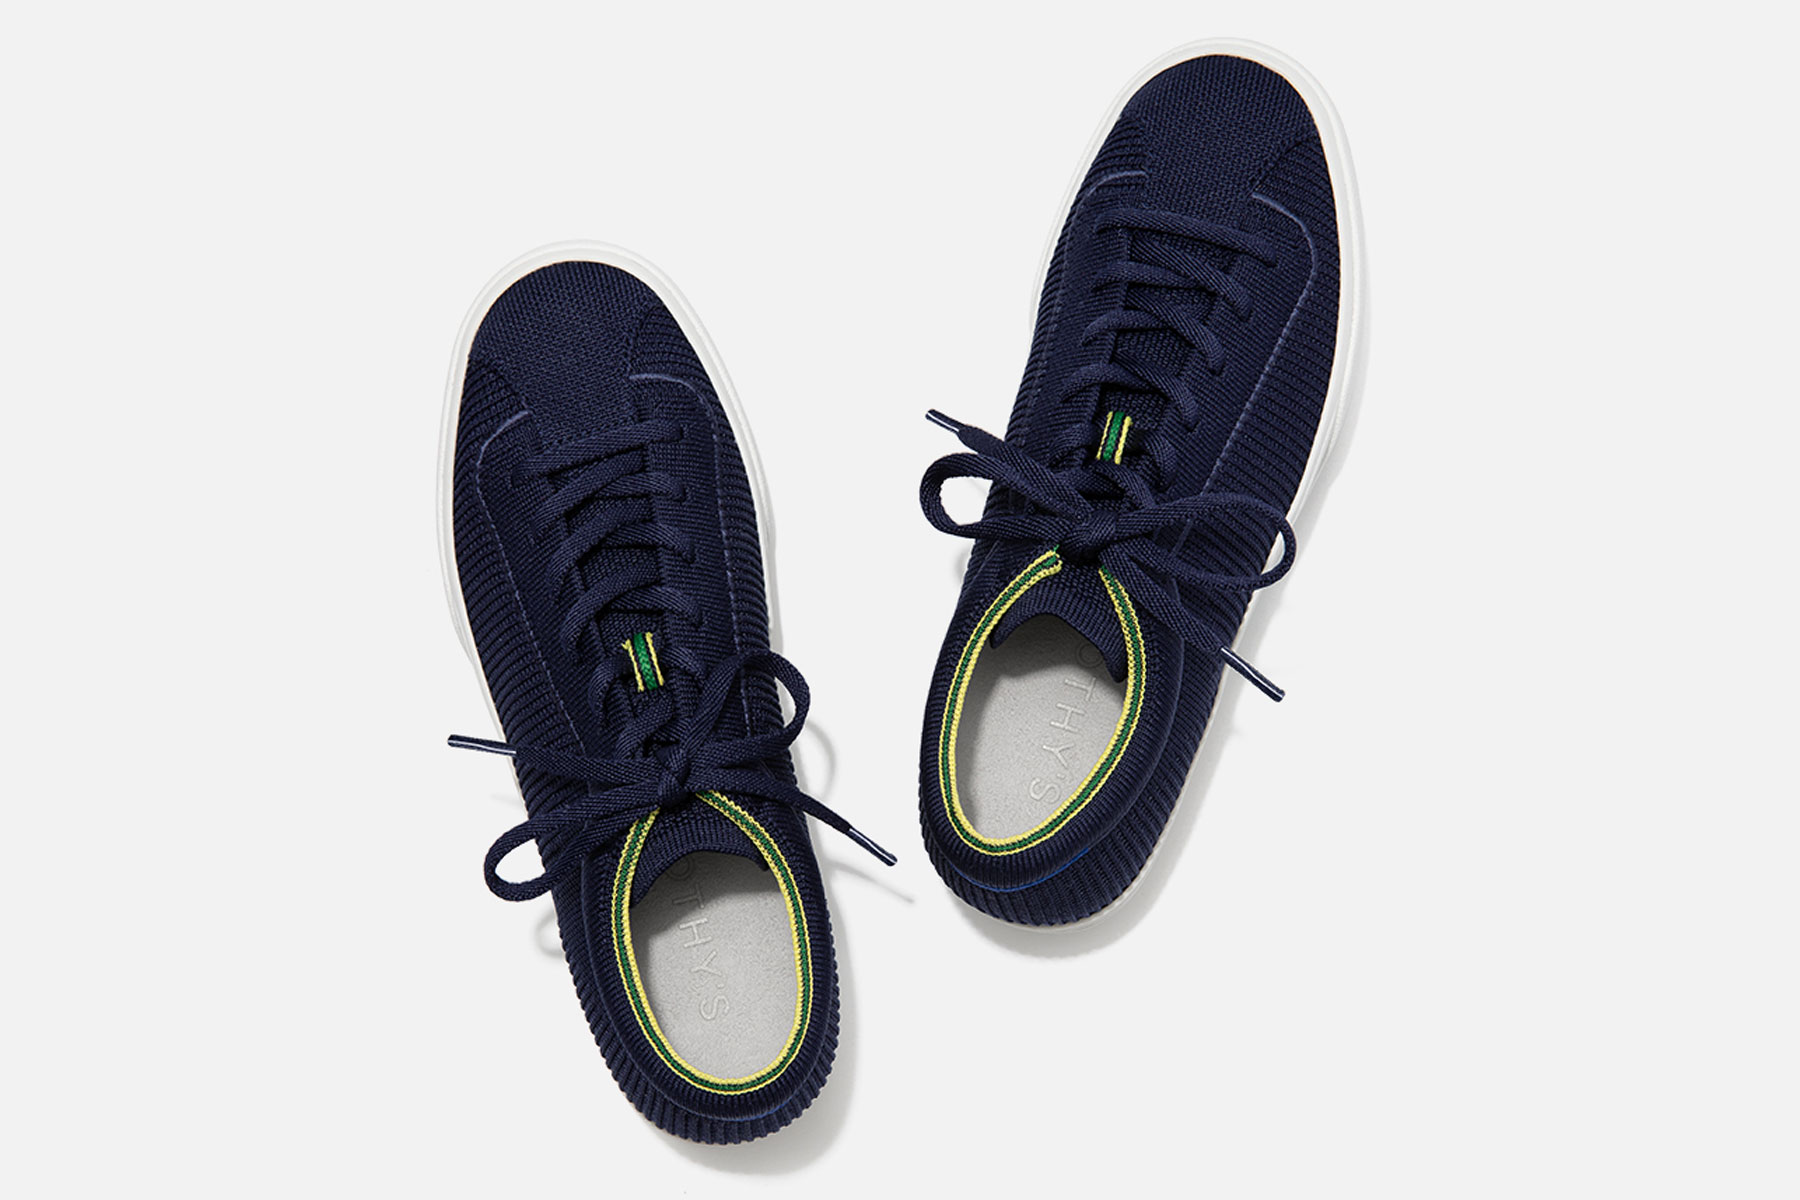 Navy lace up sneakers